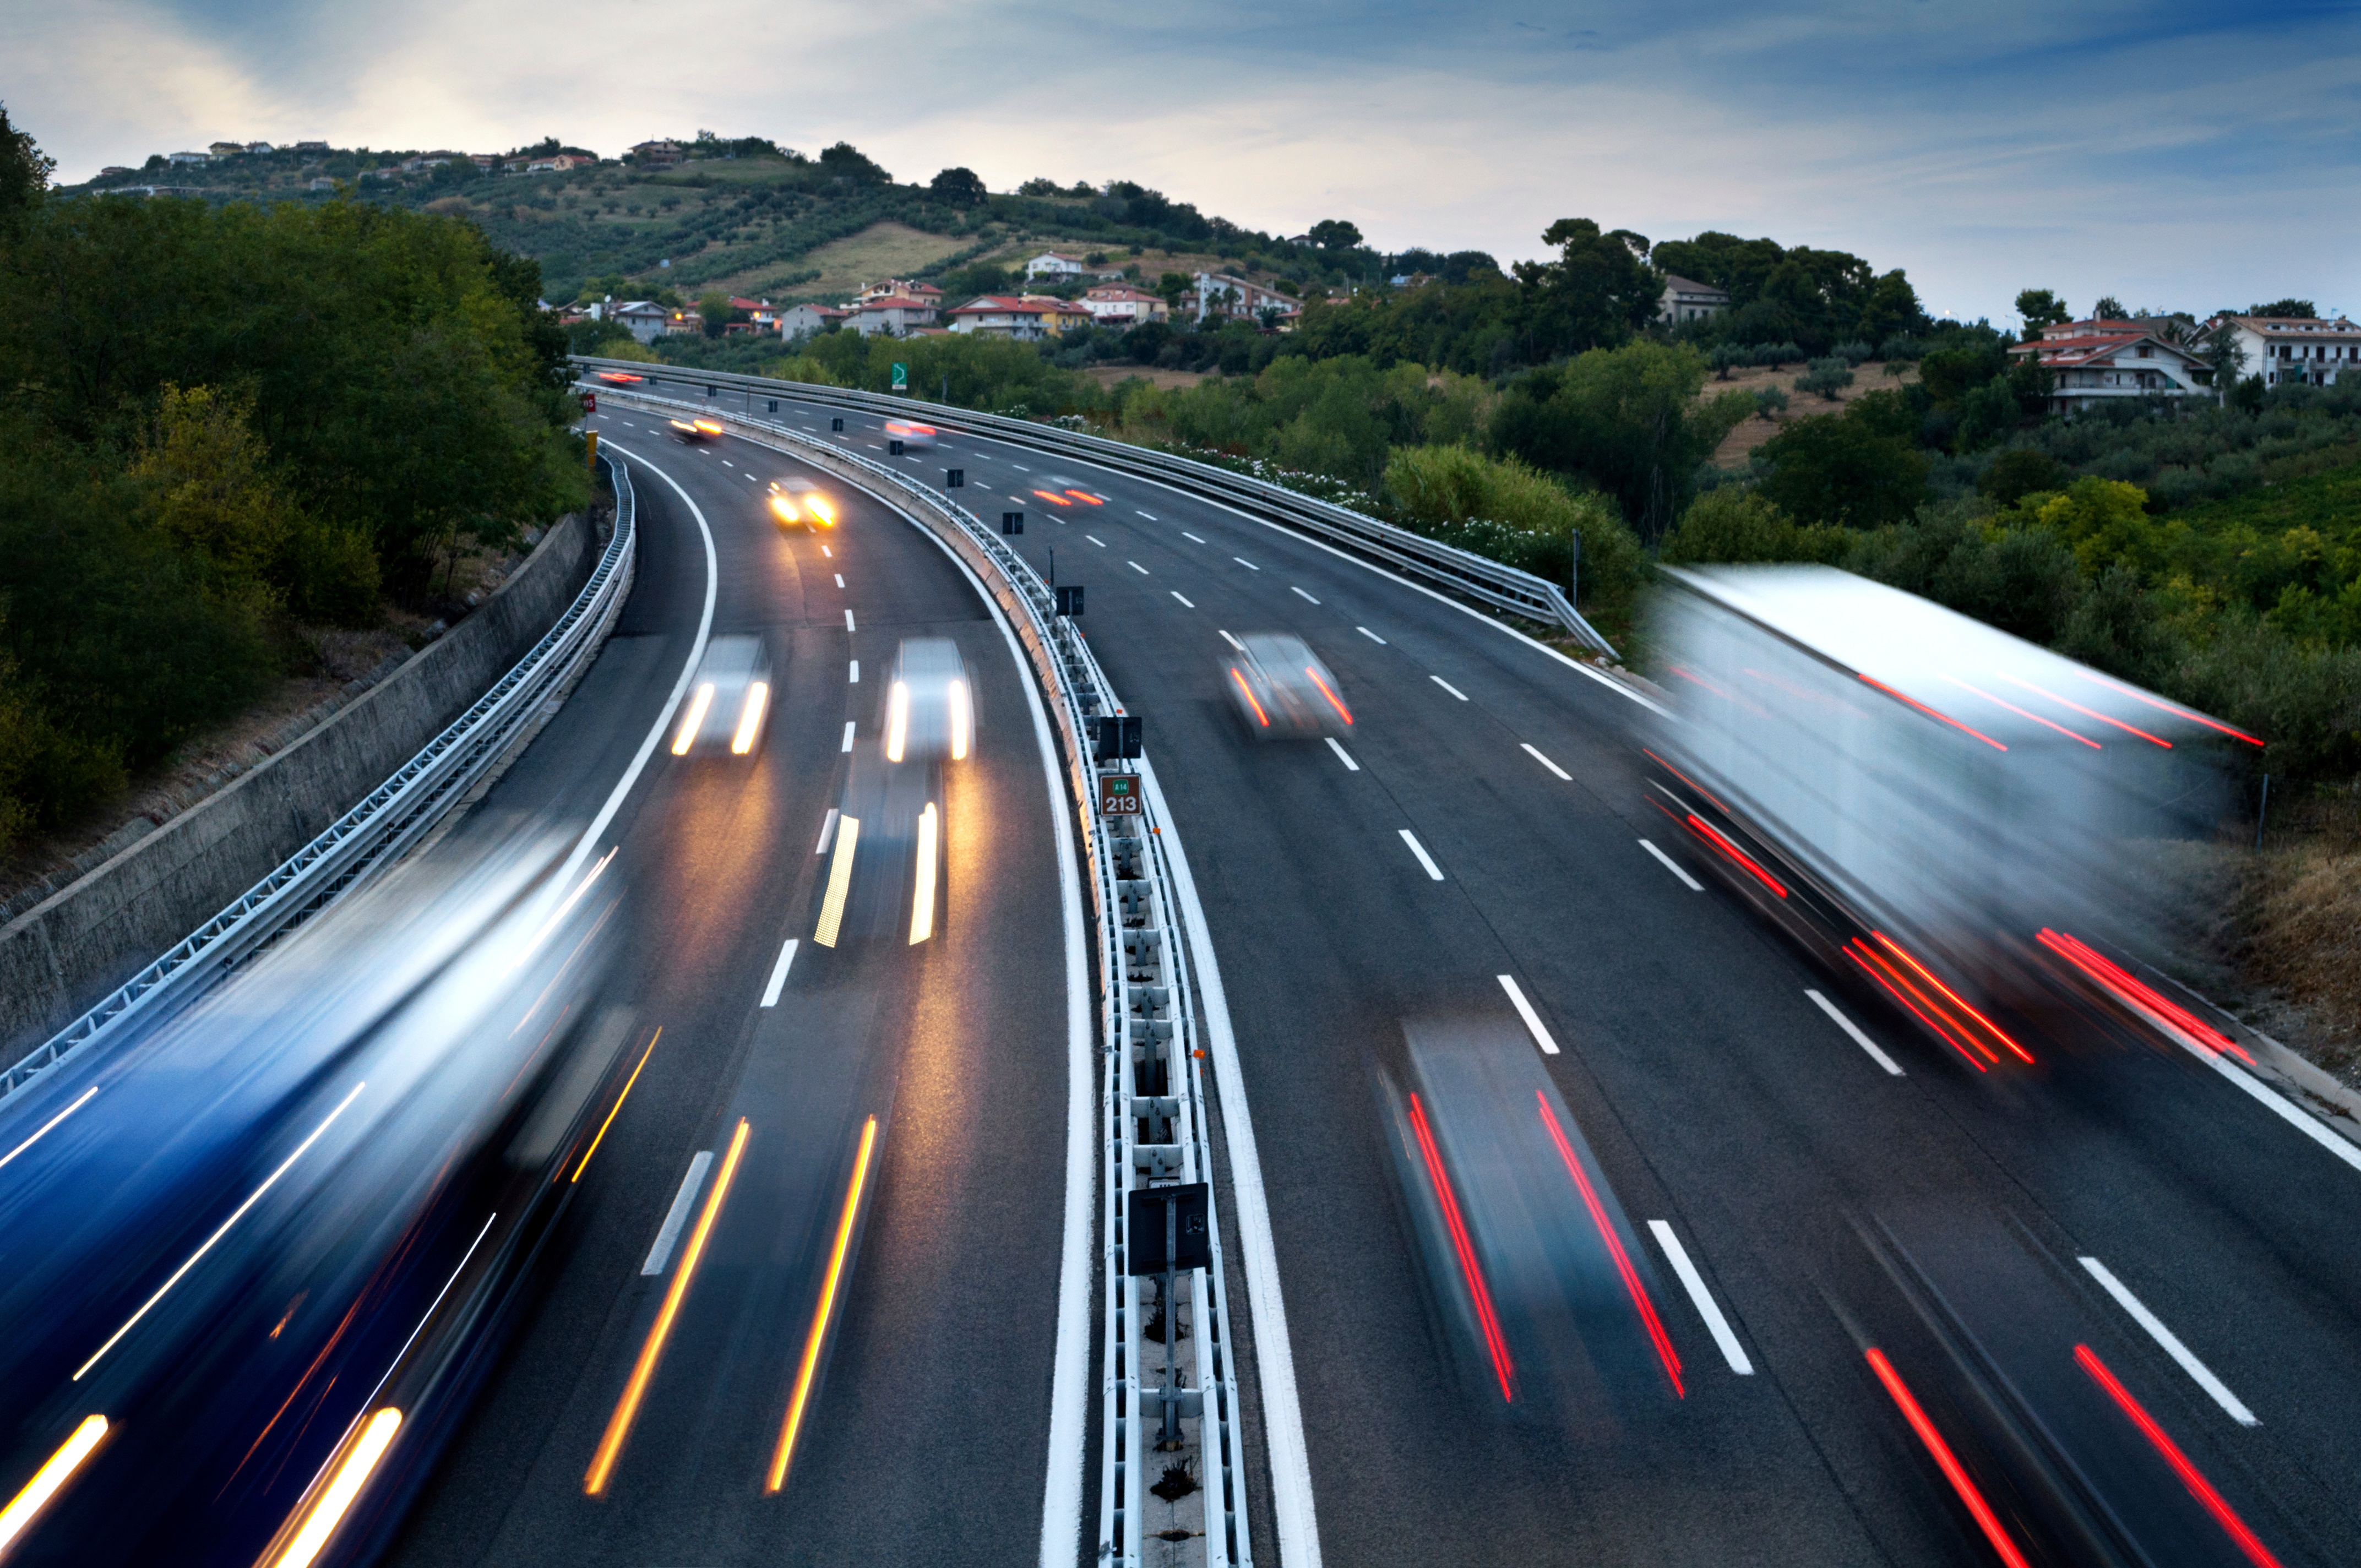 Automotive Industry Trends for 2018 - Part Two